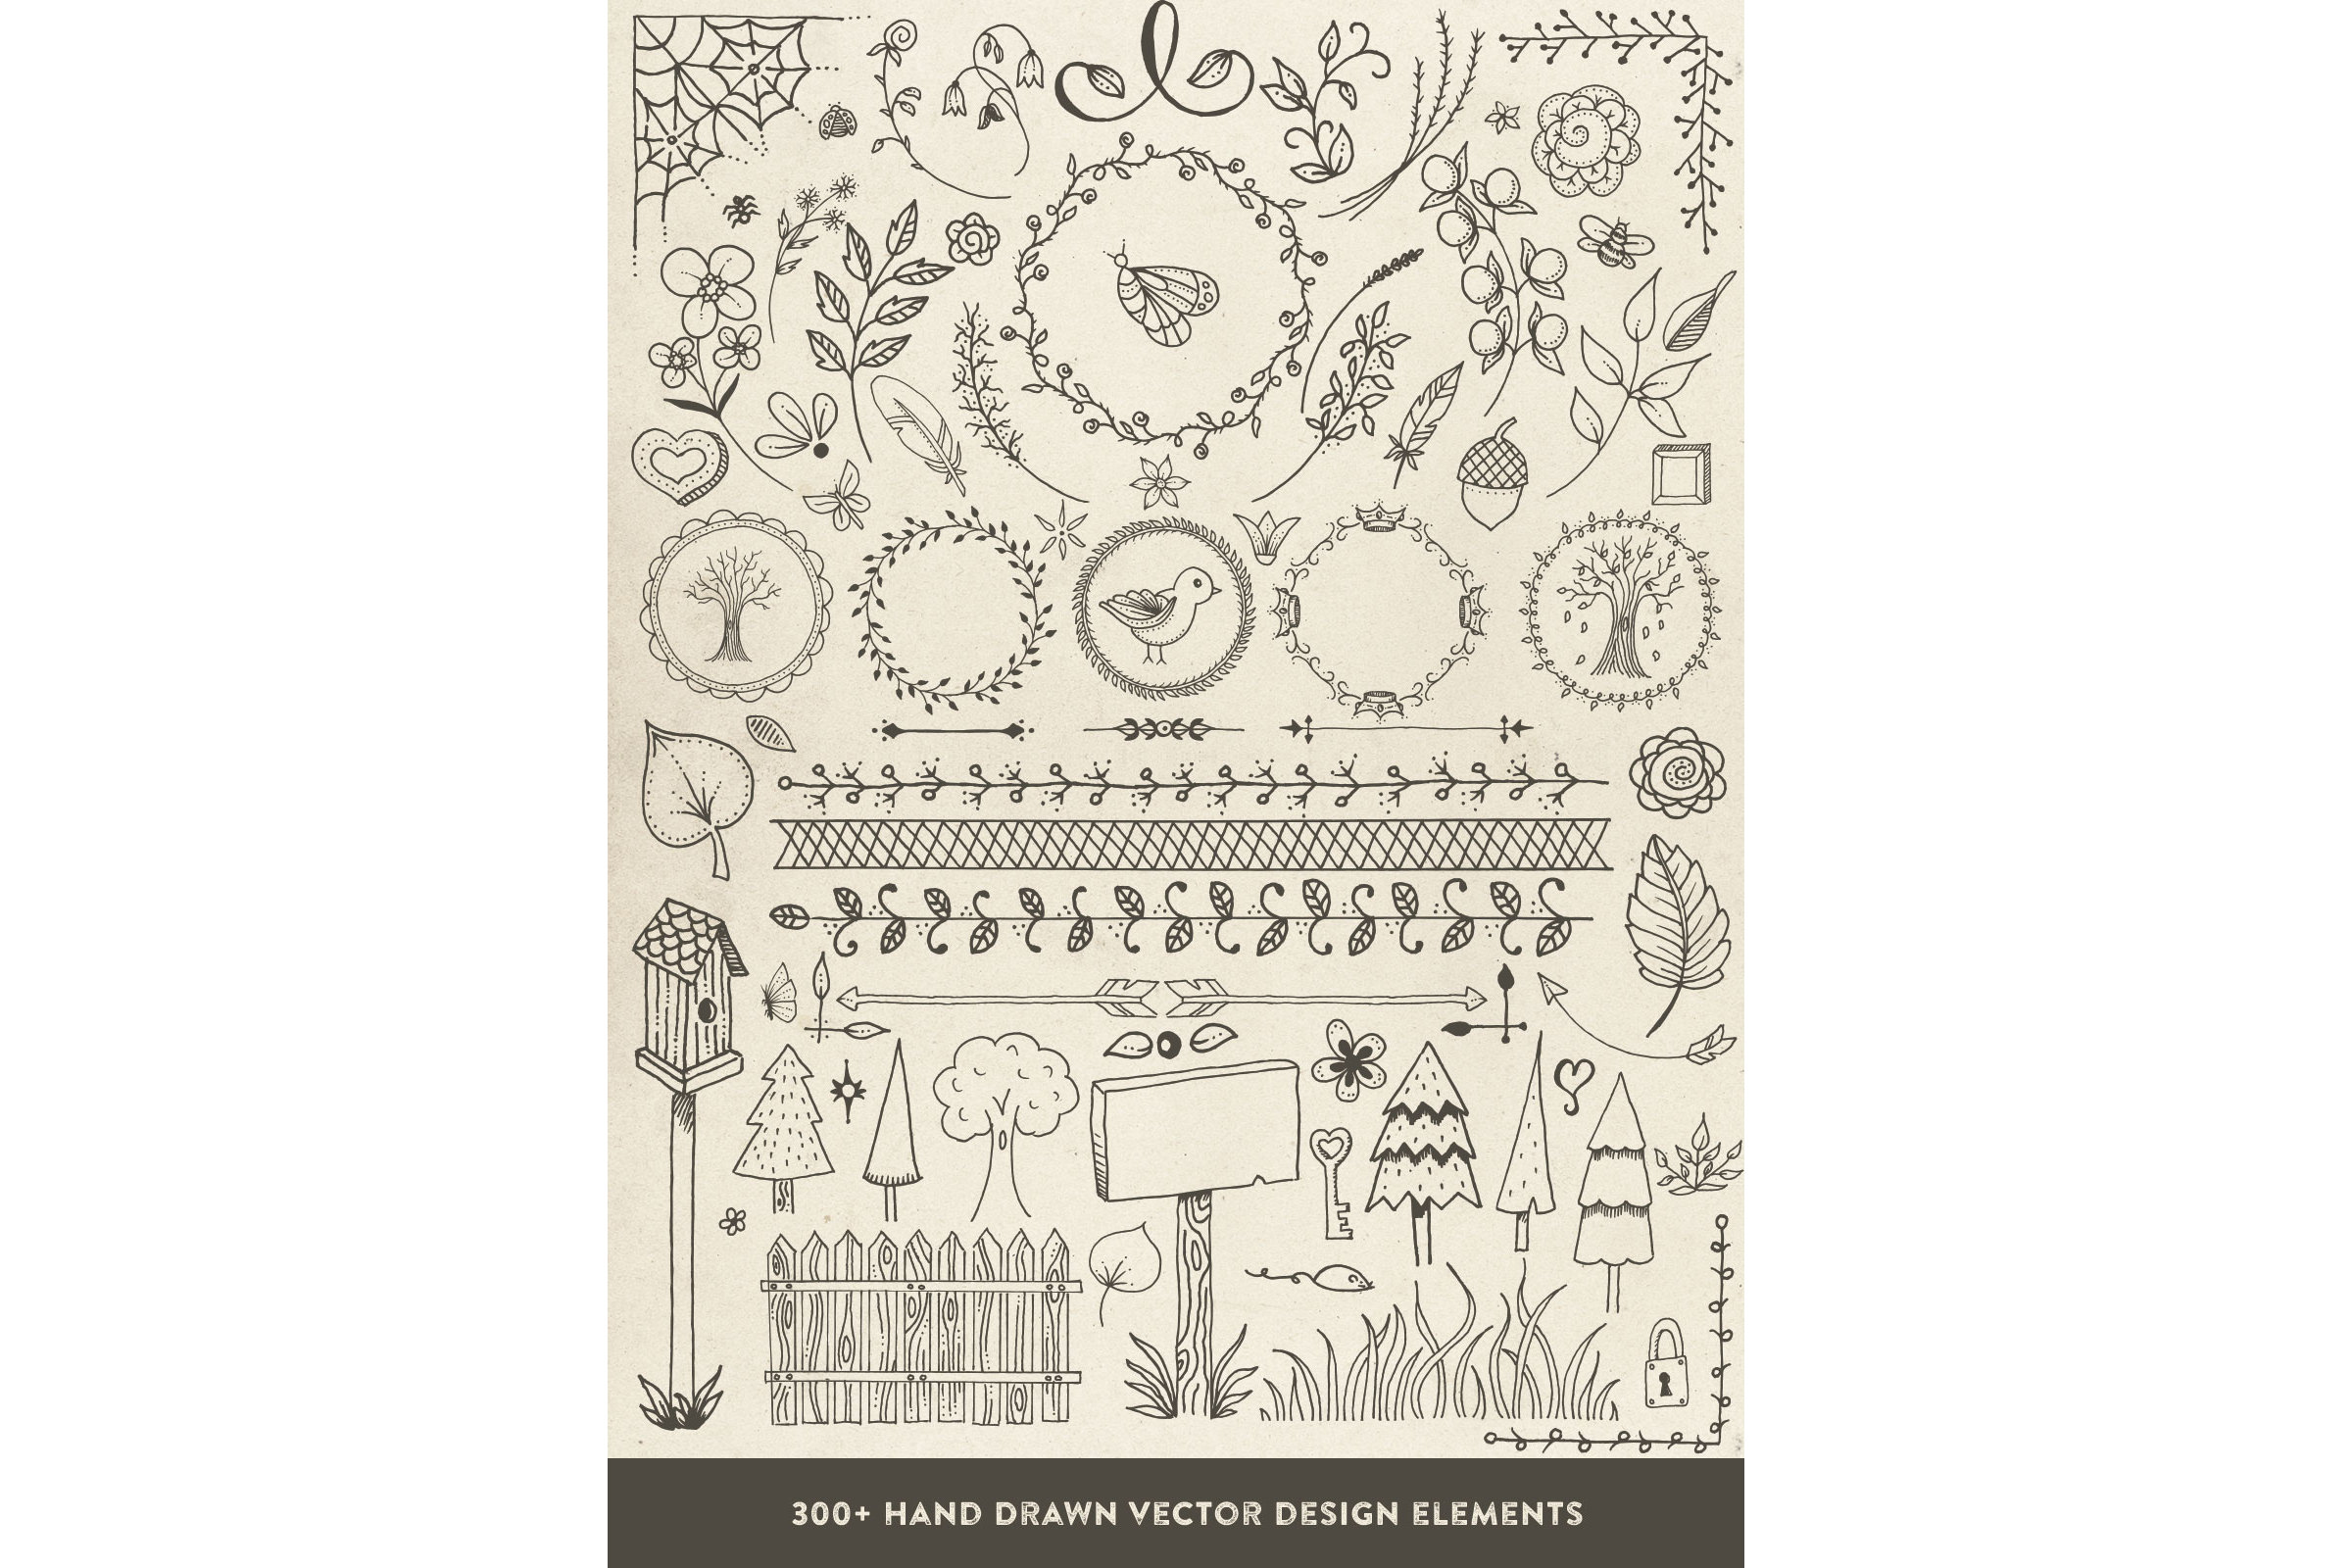 Hand Drawn Vector Design Elements example image 3